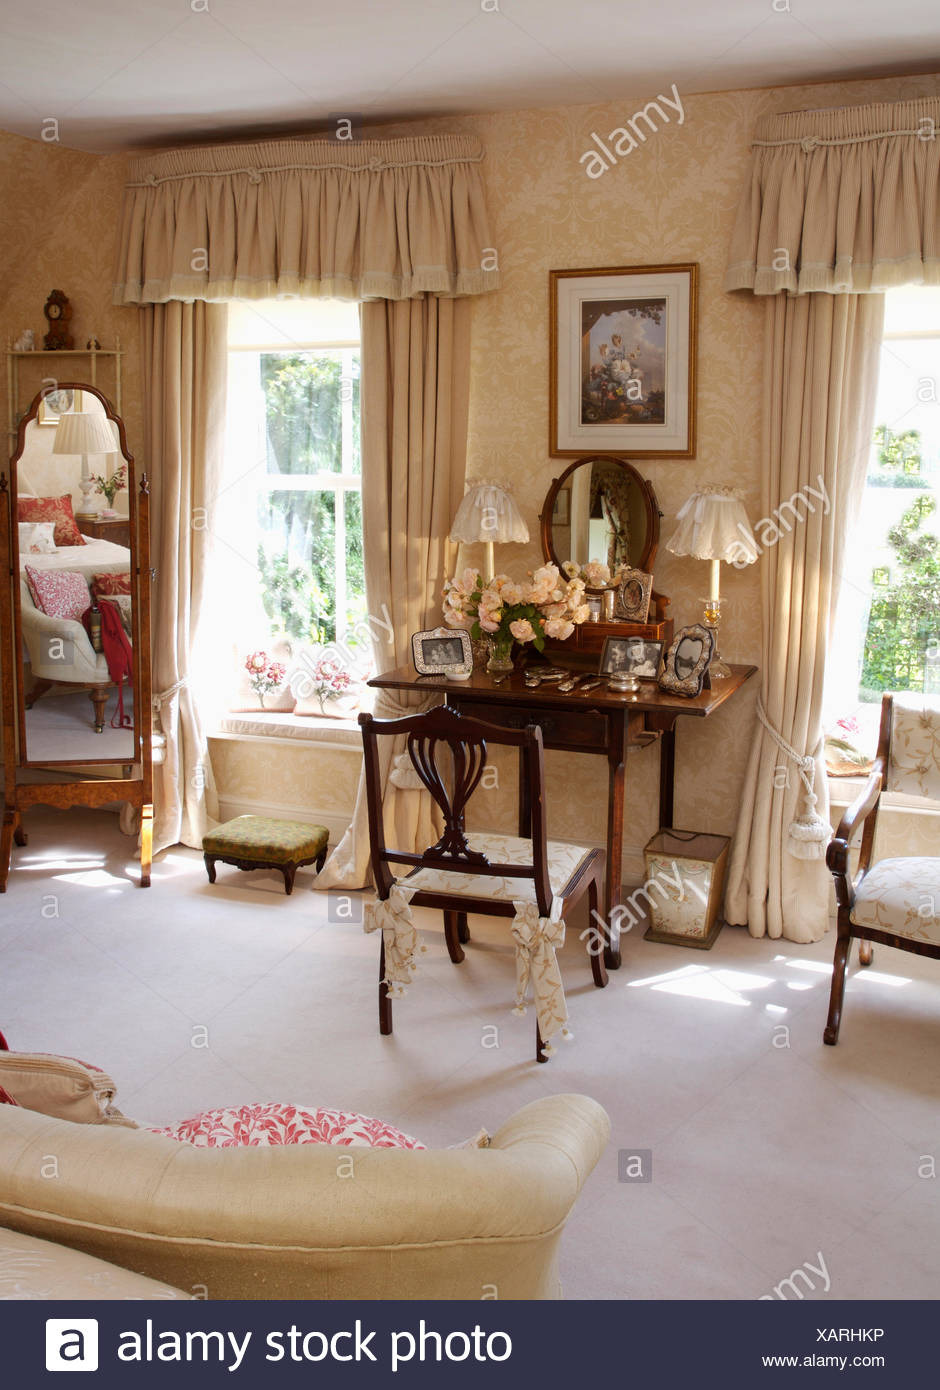 white carpet in cream country bedroom with antique furniture and cream curtains at tall windows XARHKP